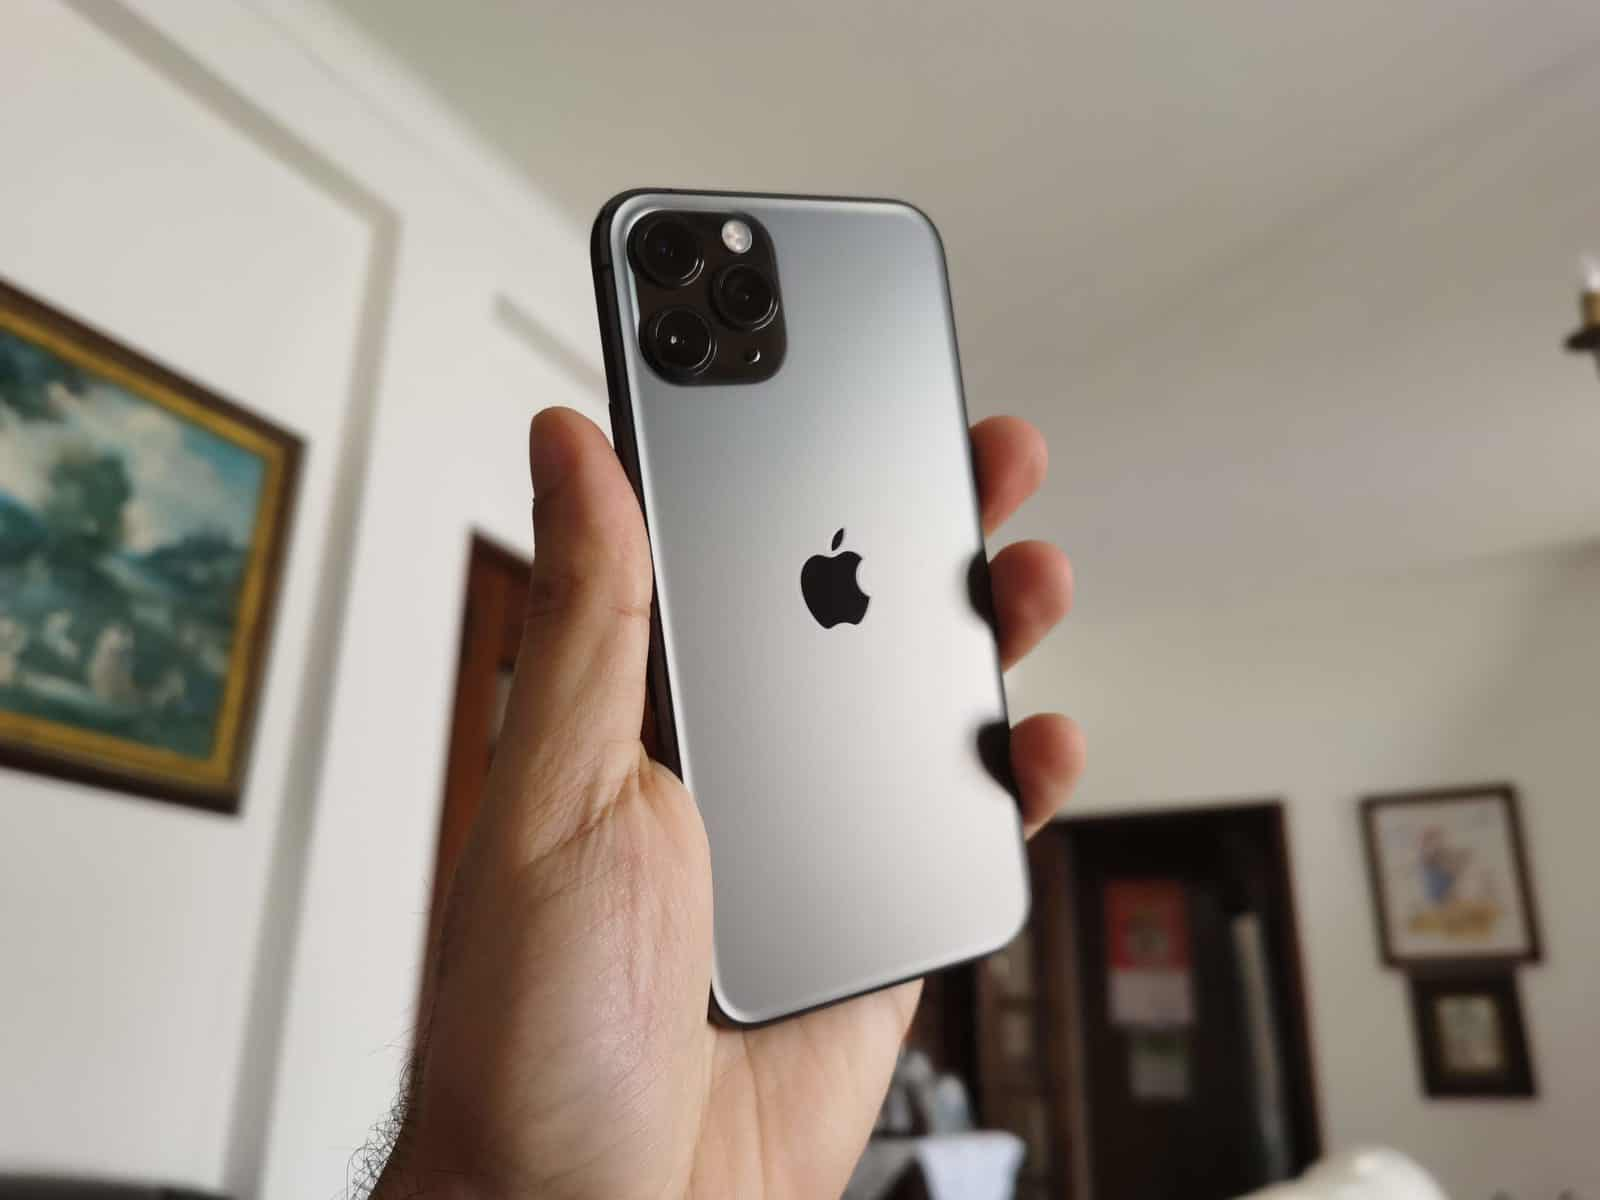 (Opinion) iPhone 11 Pro: After 6 months, is the apple still good?